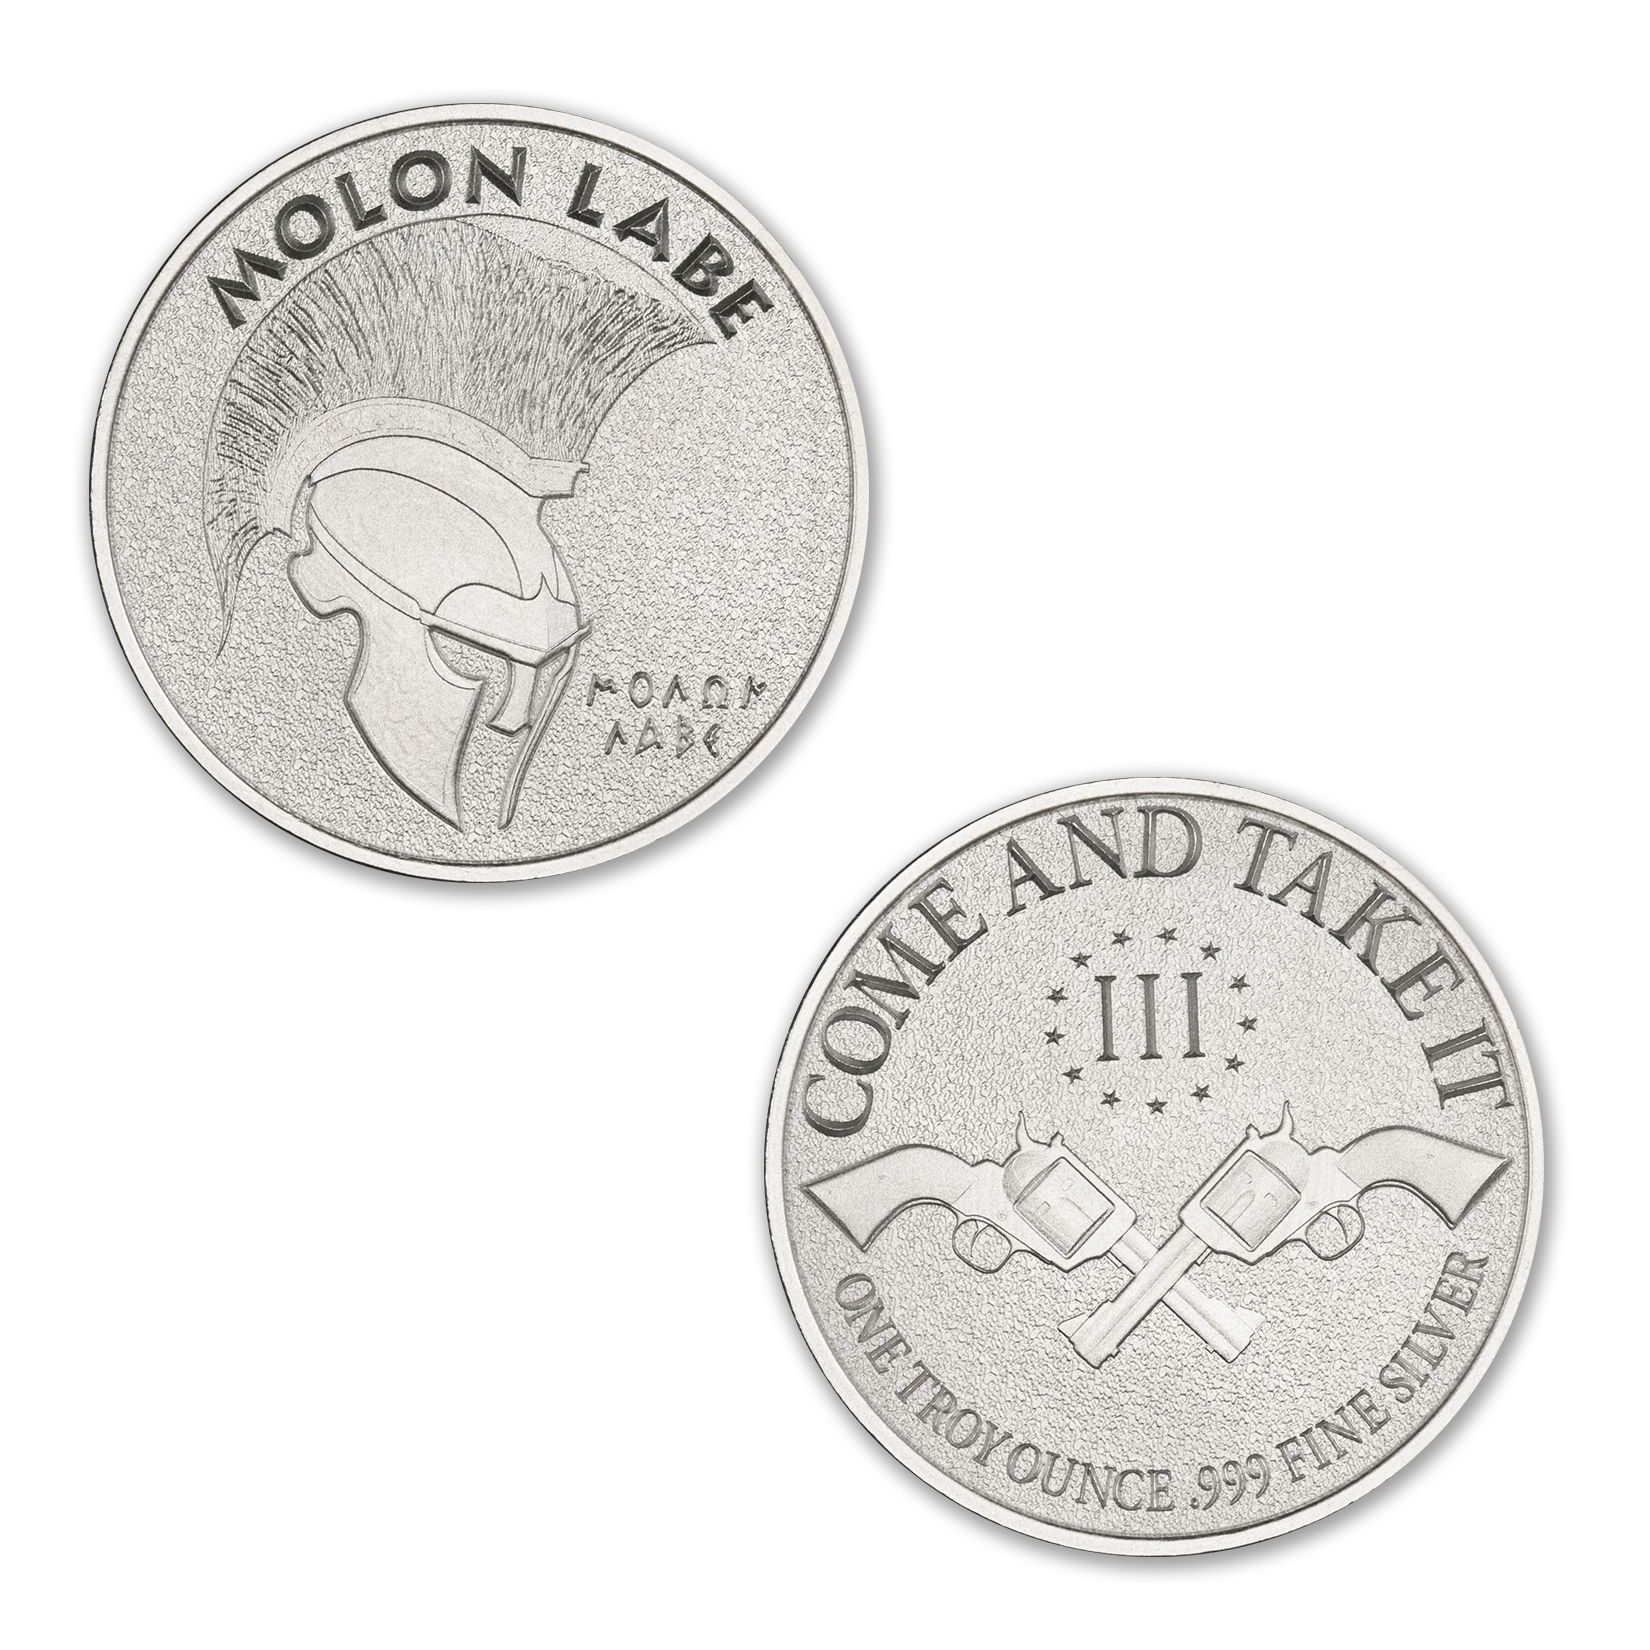 CLASSIC MOLON LABE, COLTS – 1 TROY OUNCE – 39MM